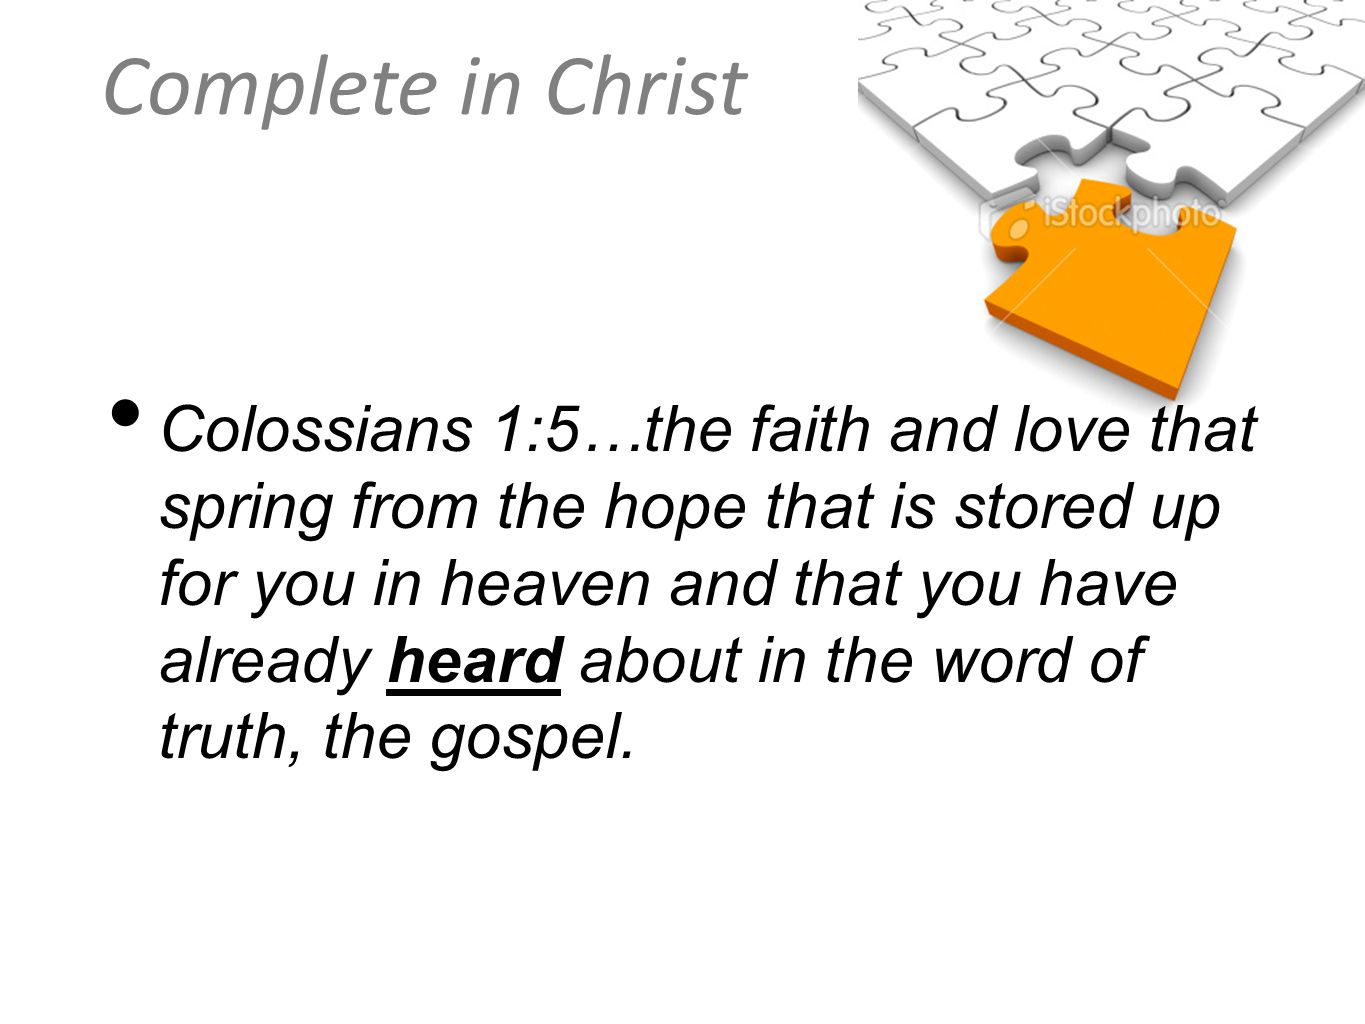 Complete in Christ Colossians 1:5…the faith and love that spring from the hope that is stored up for you in heaven and that you have already heard abo